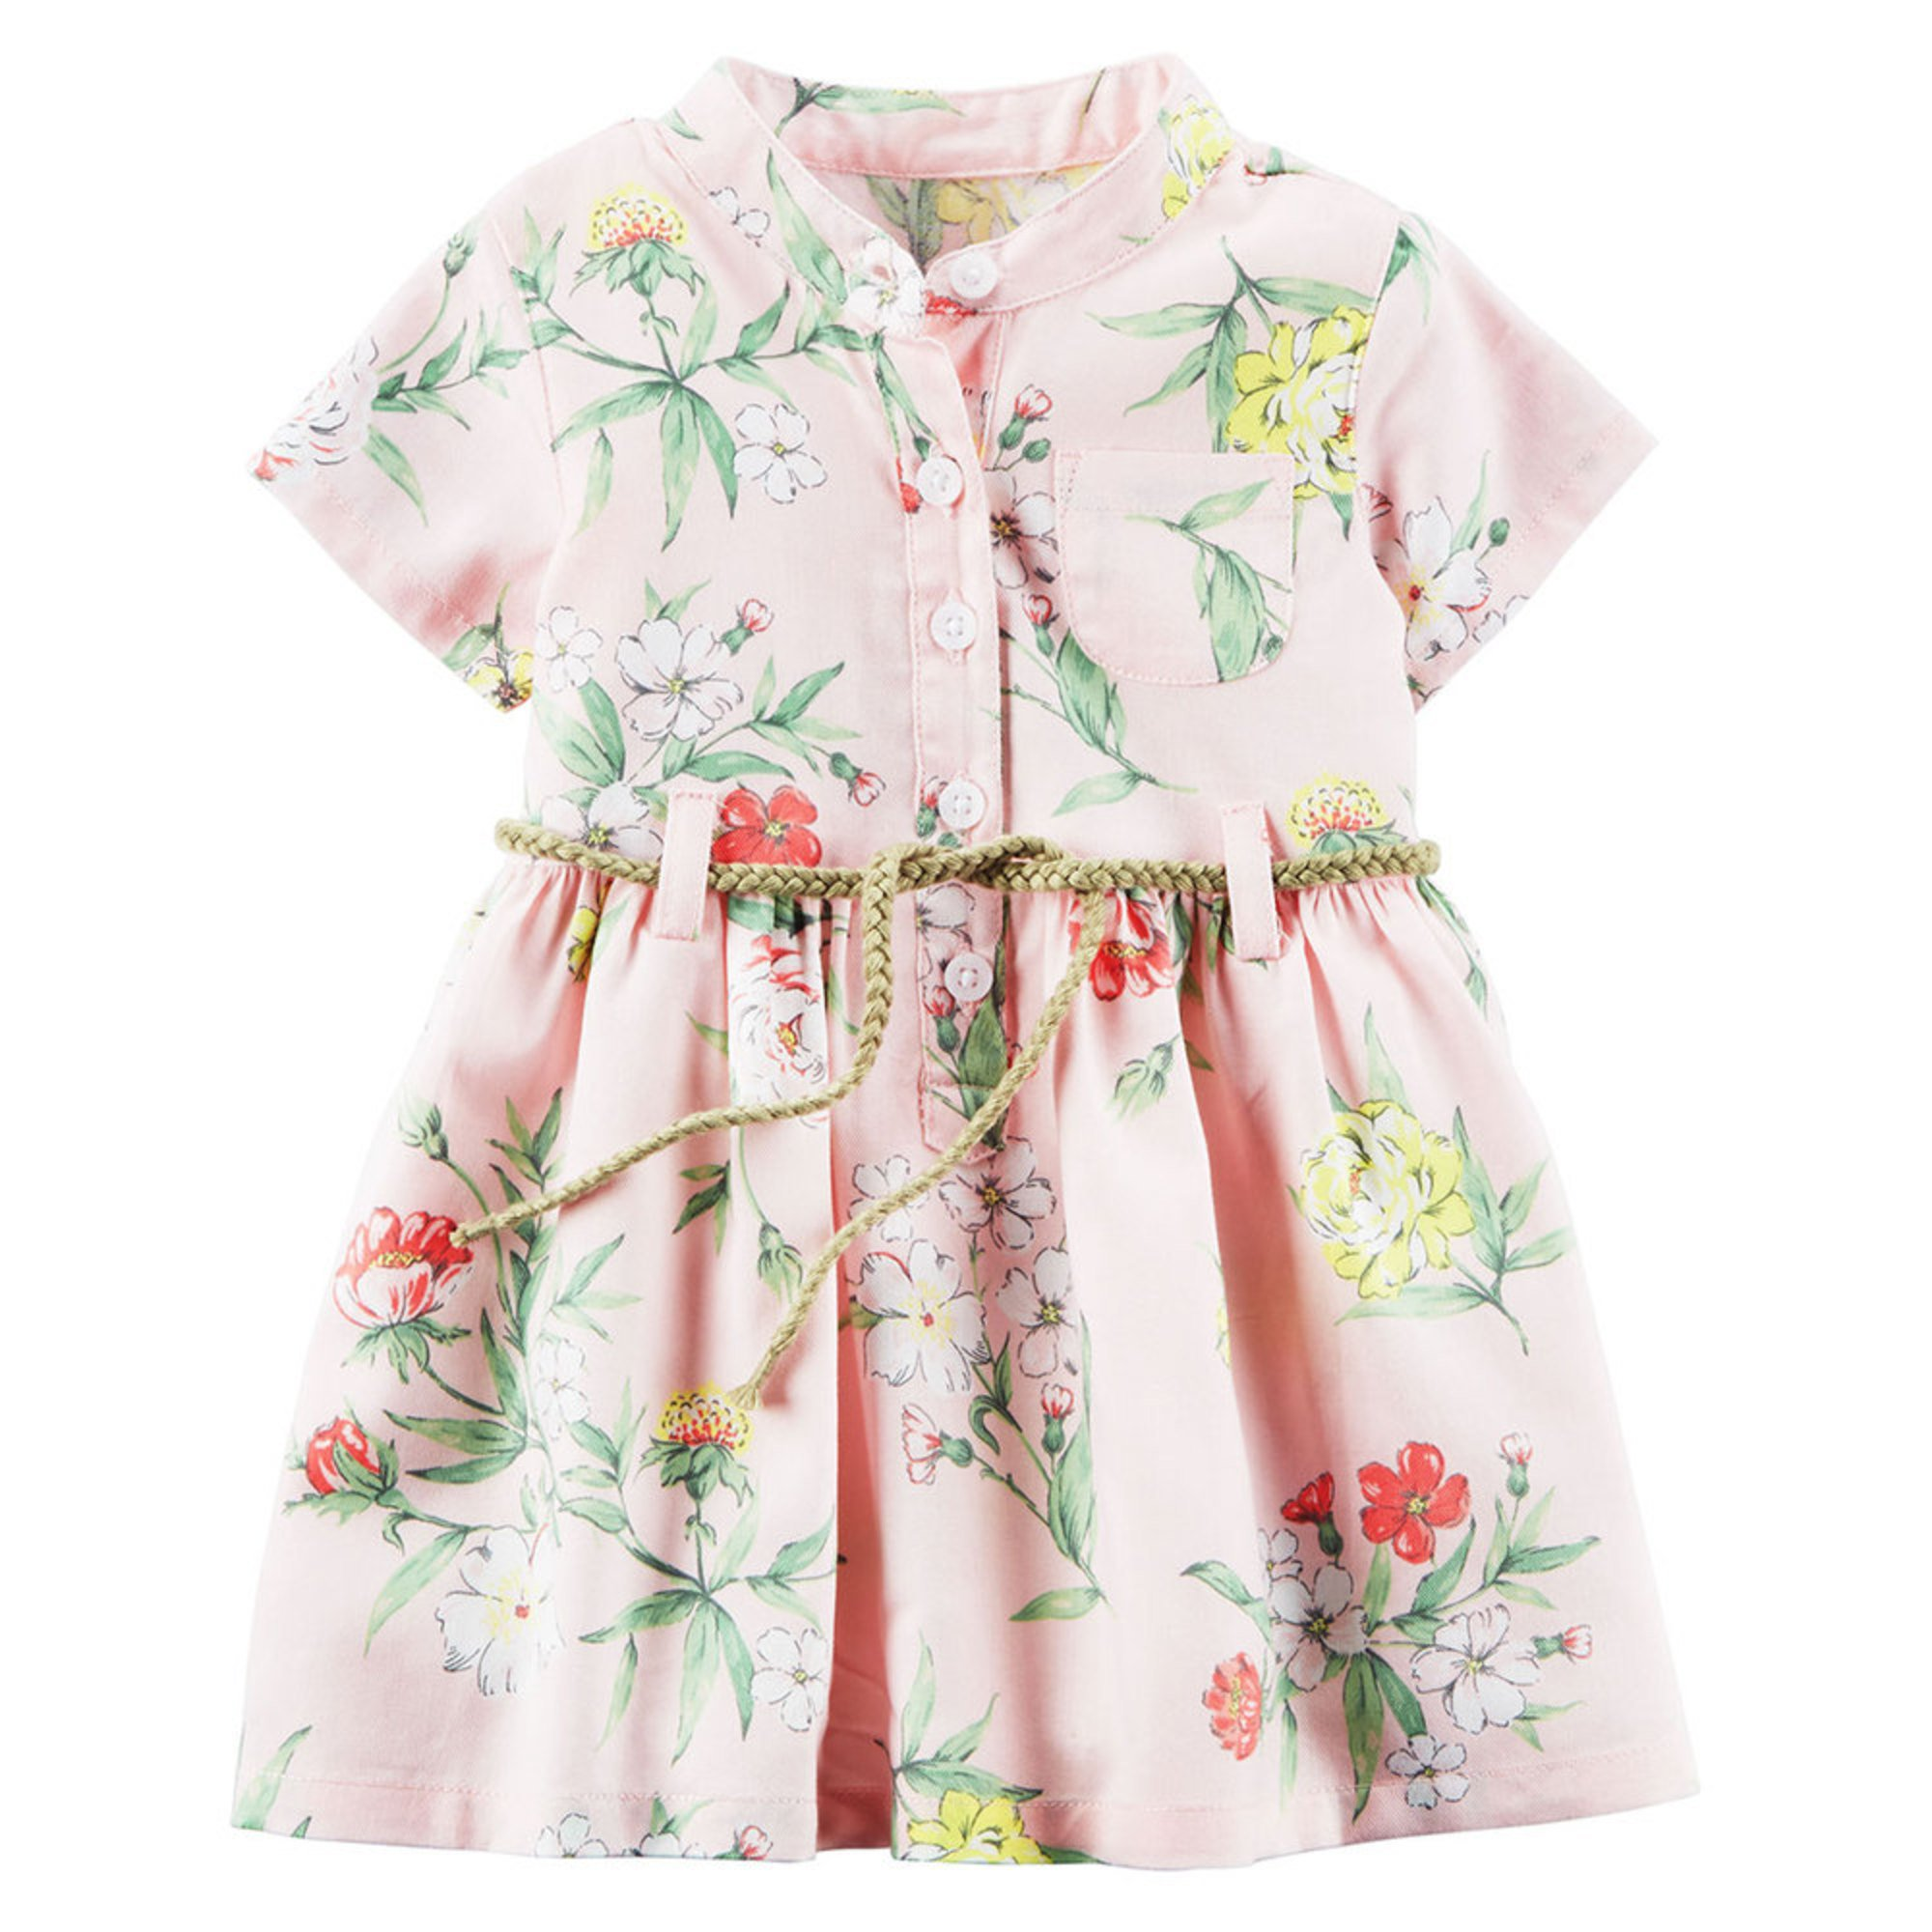 Choose Carter's any time you want to dress your little ones in the apparel that's adorable and practical. Discover the perfect play clothes including vibrant one-piece bodysuits, matching baby sets, coordinating separates and fun swimwear.